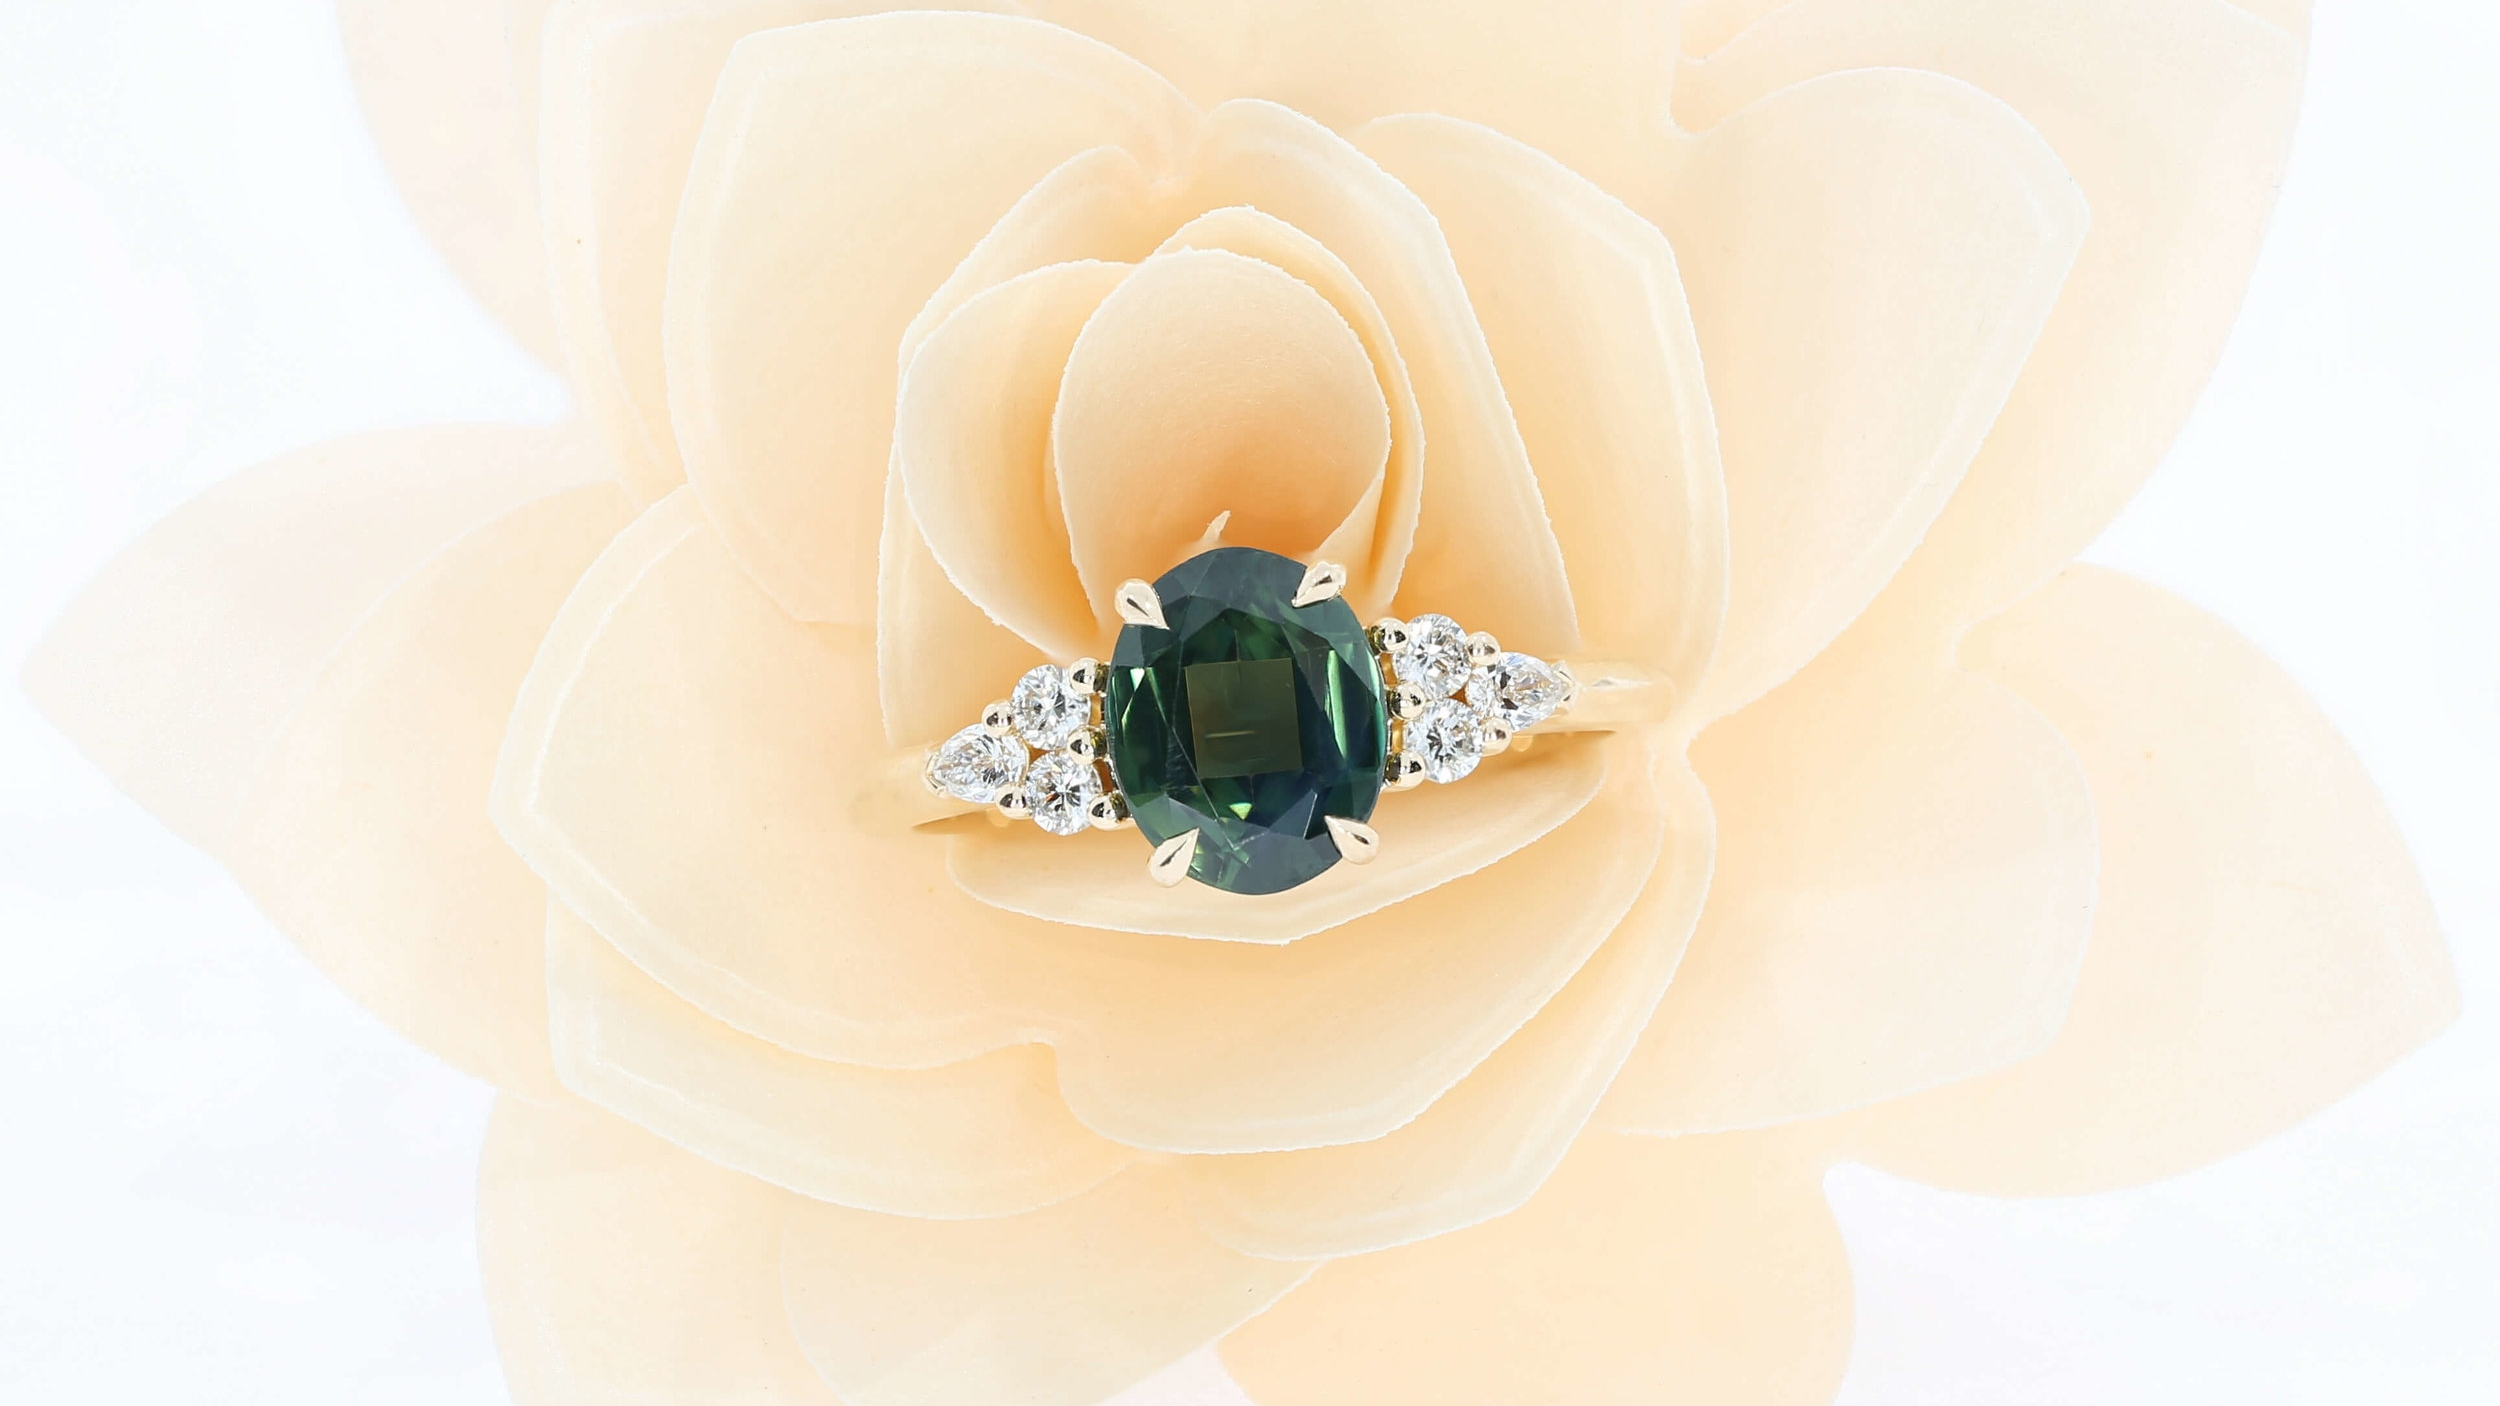 A bespoke engagement ring, using a green centre sapphire, and round and pear shoulder diamonds, set in 18k rose gold